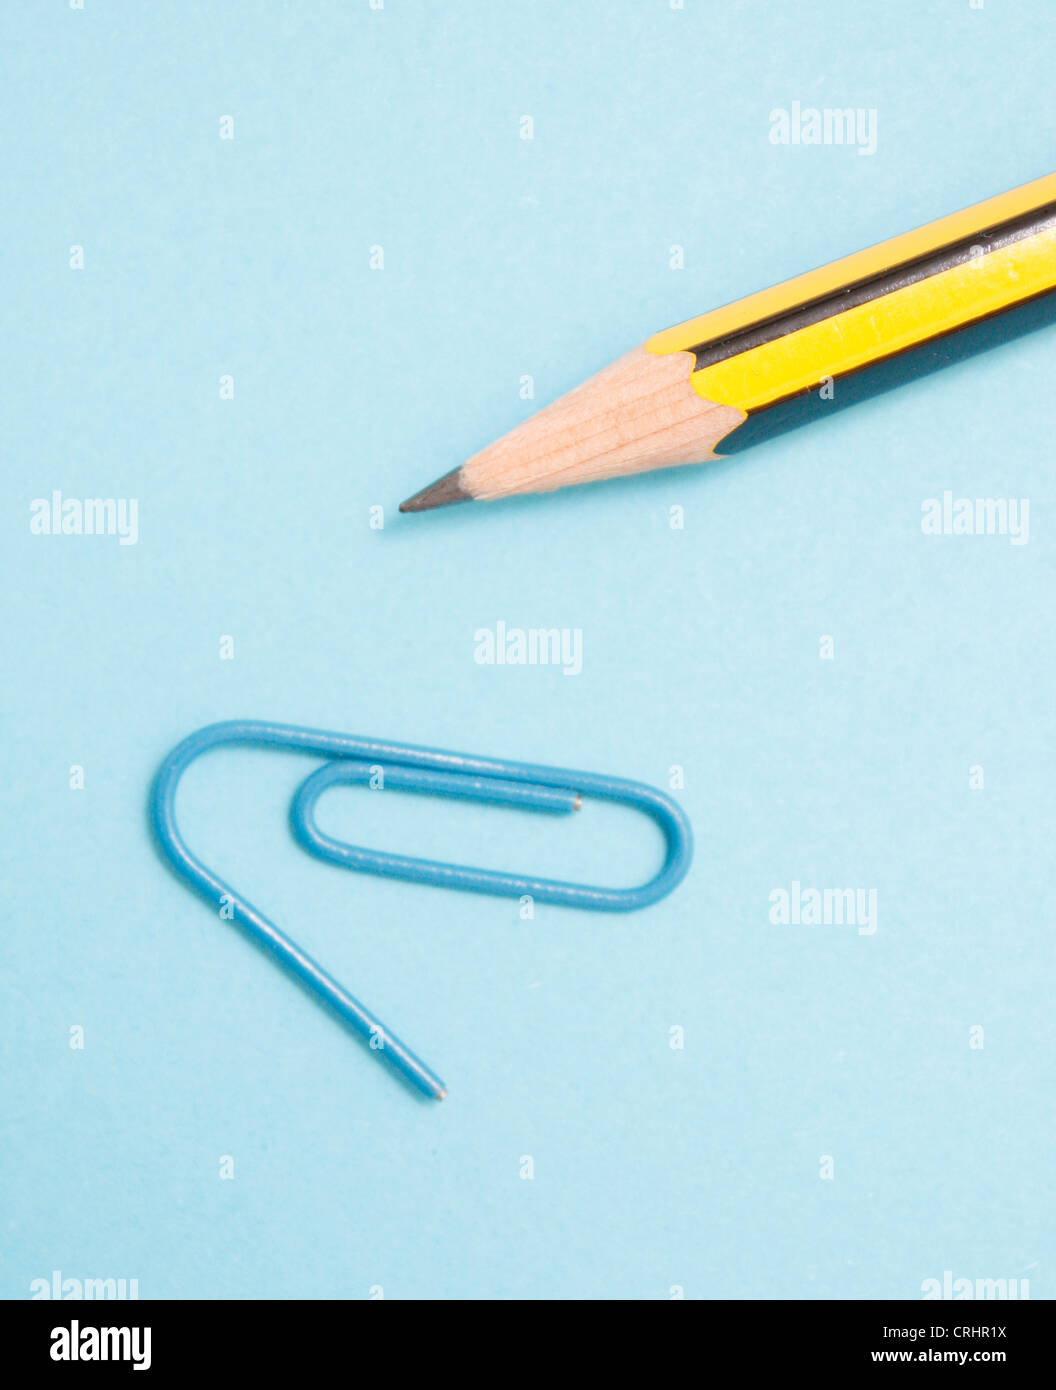 Pencil and clip - Stock Image